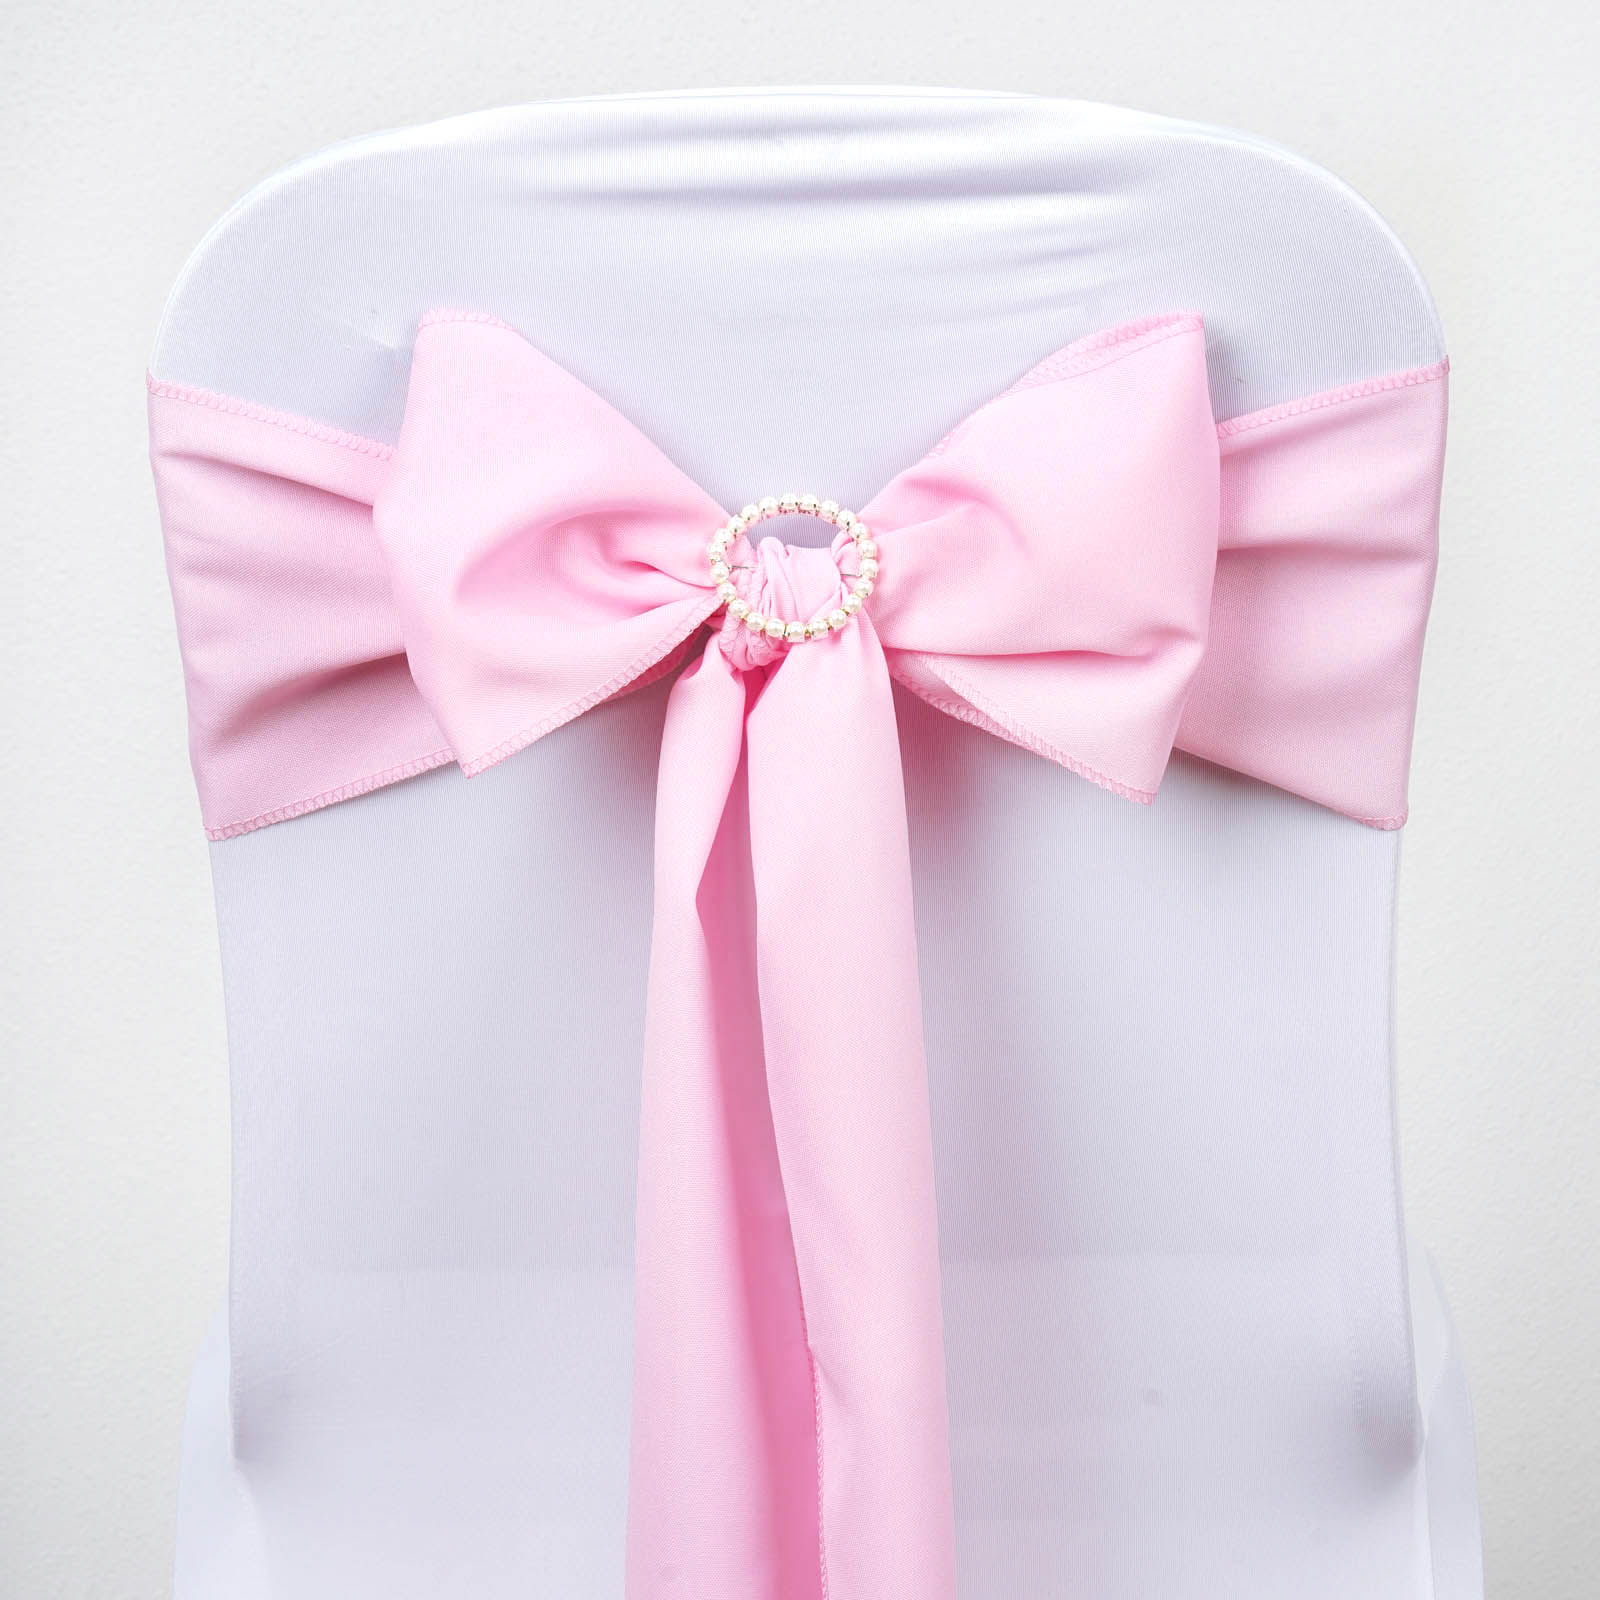 Chair Bows 150 Polyester Chair Sashes Ties Bows Wedding Party